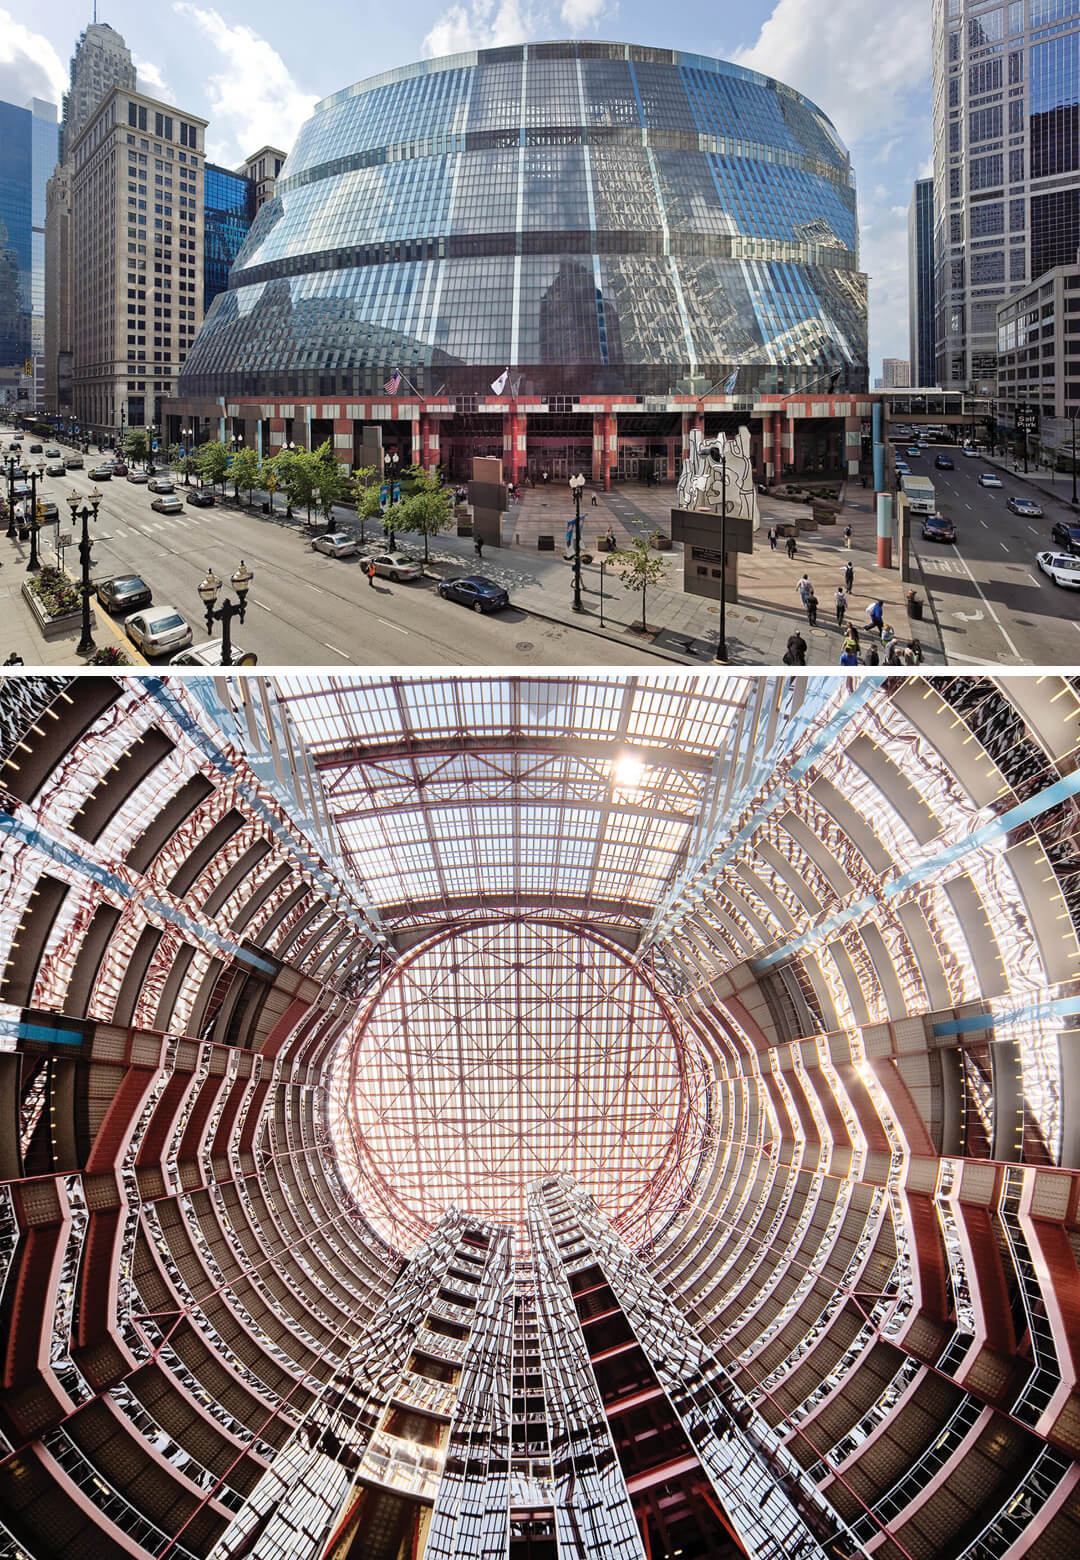 The Thompson Center designed by Helmut Jahn in 1985 in Chicago, USA. The building is topped with a sliced-off cylindrical crown and serves as a central skylight over the 17-storey, 160-foot-diameter rotunda below | STIRworld